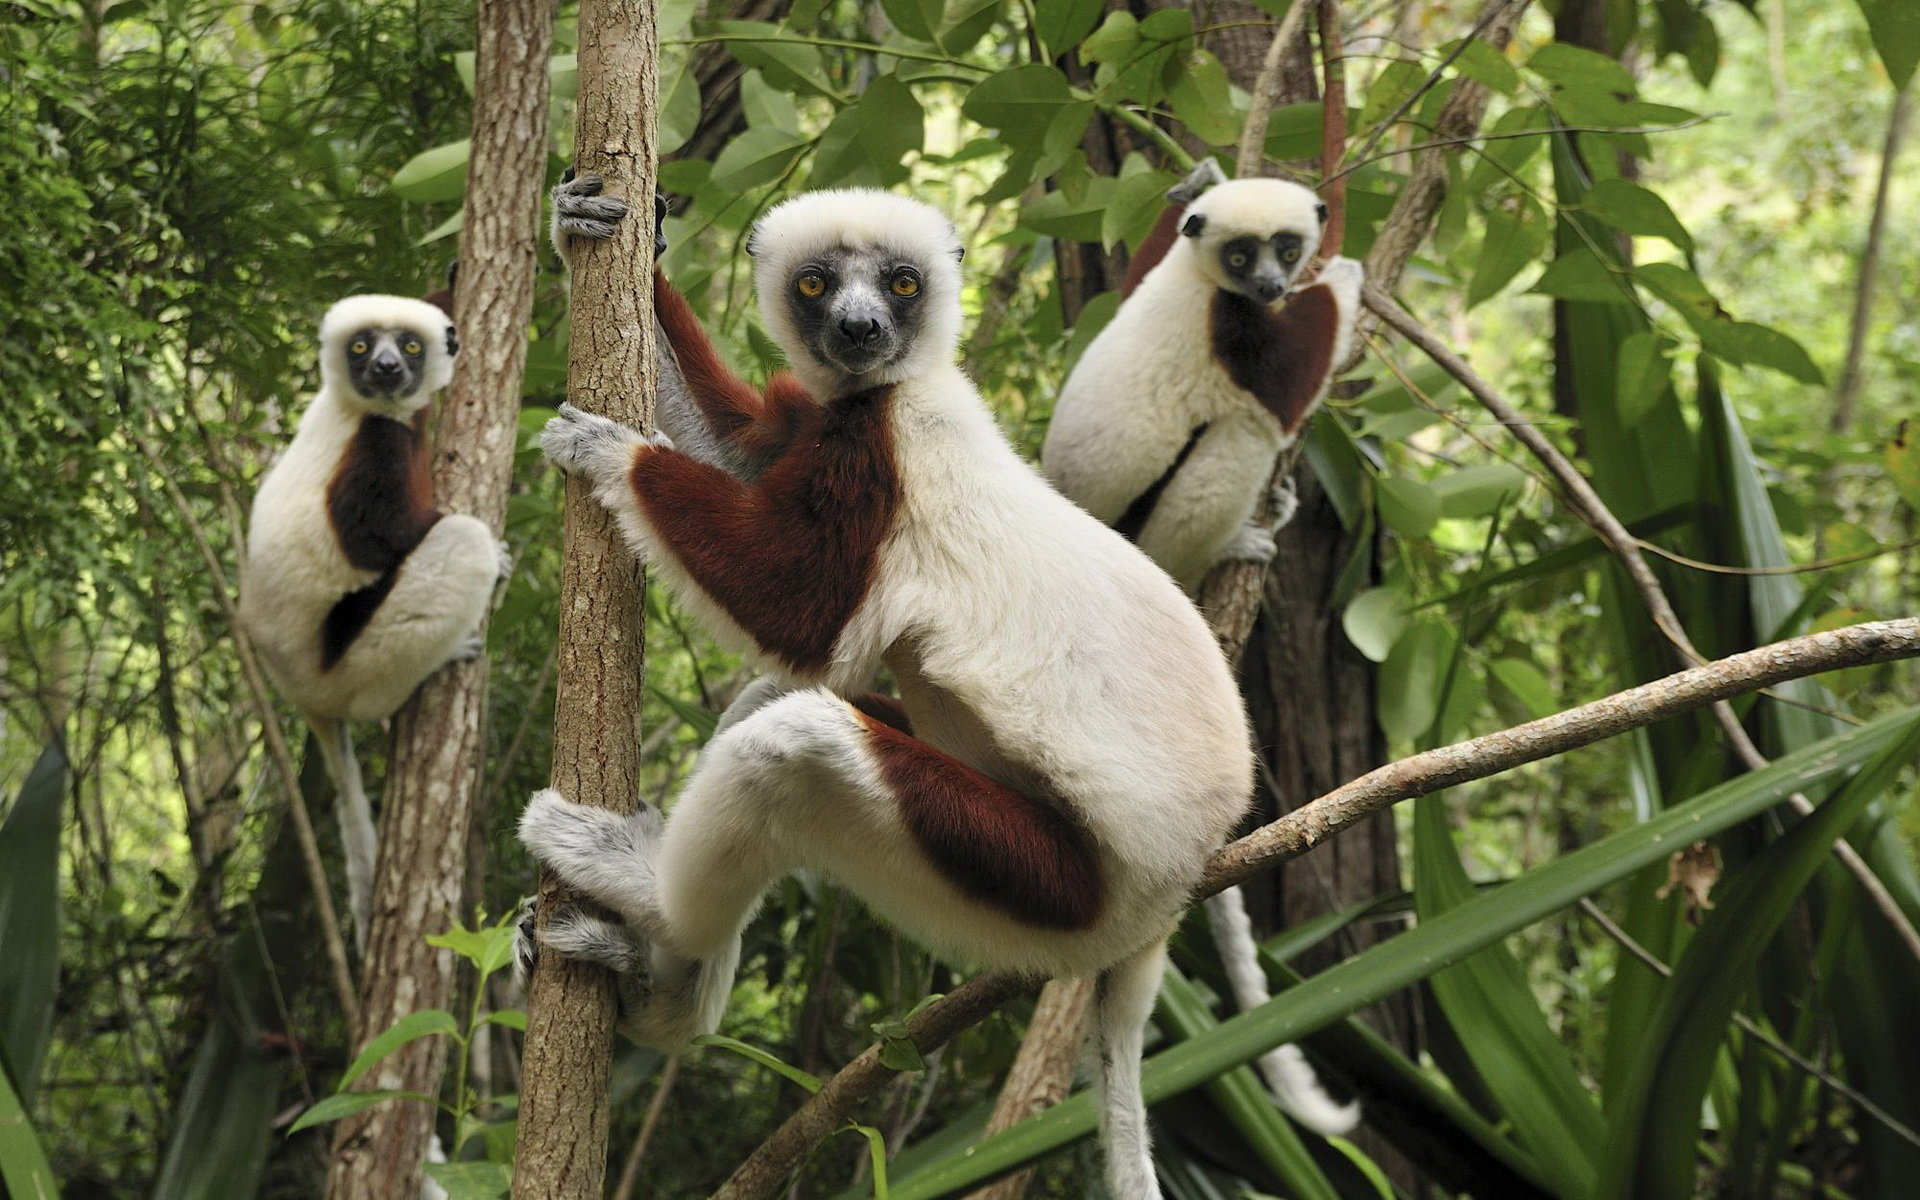 Download hd 1920x1200 Lemur desktop background ID:53220 for free